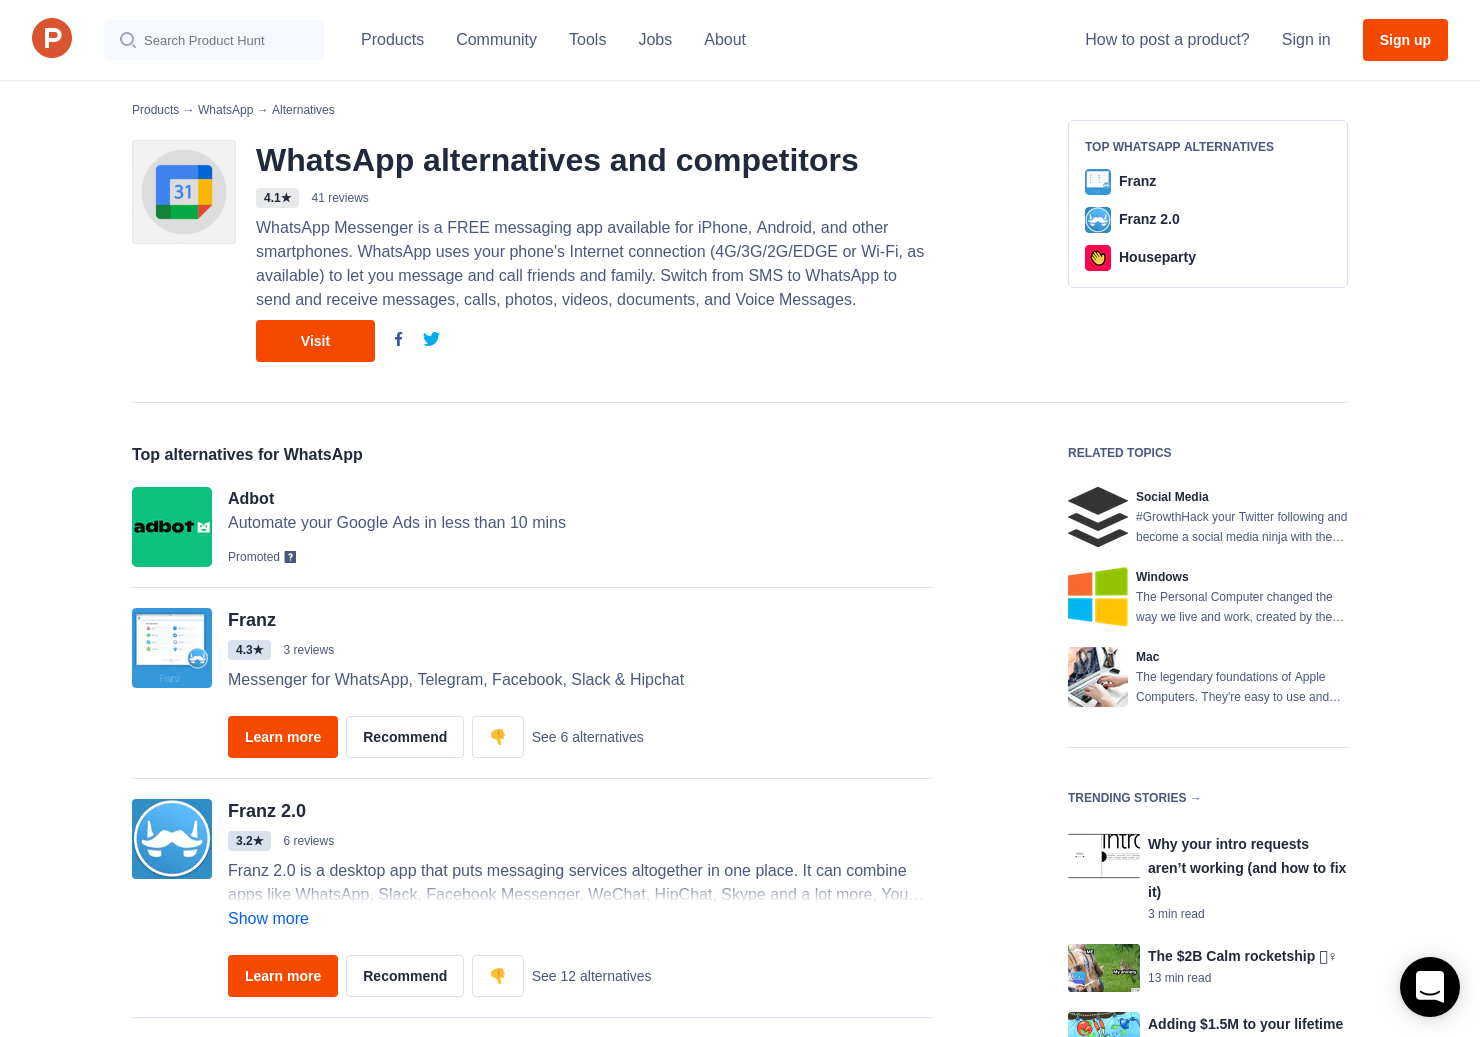 11 Alternatives to WhatsApp for Desktop | Product Hunt